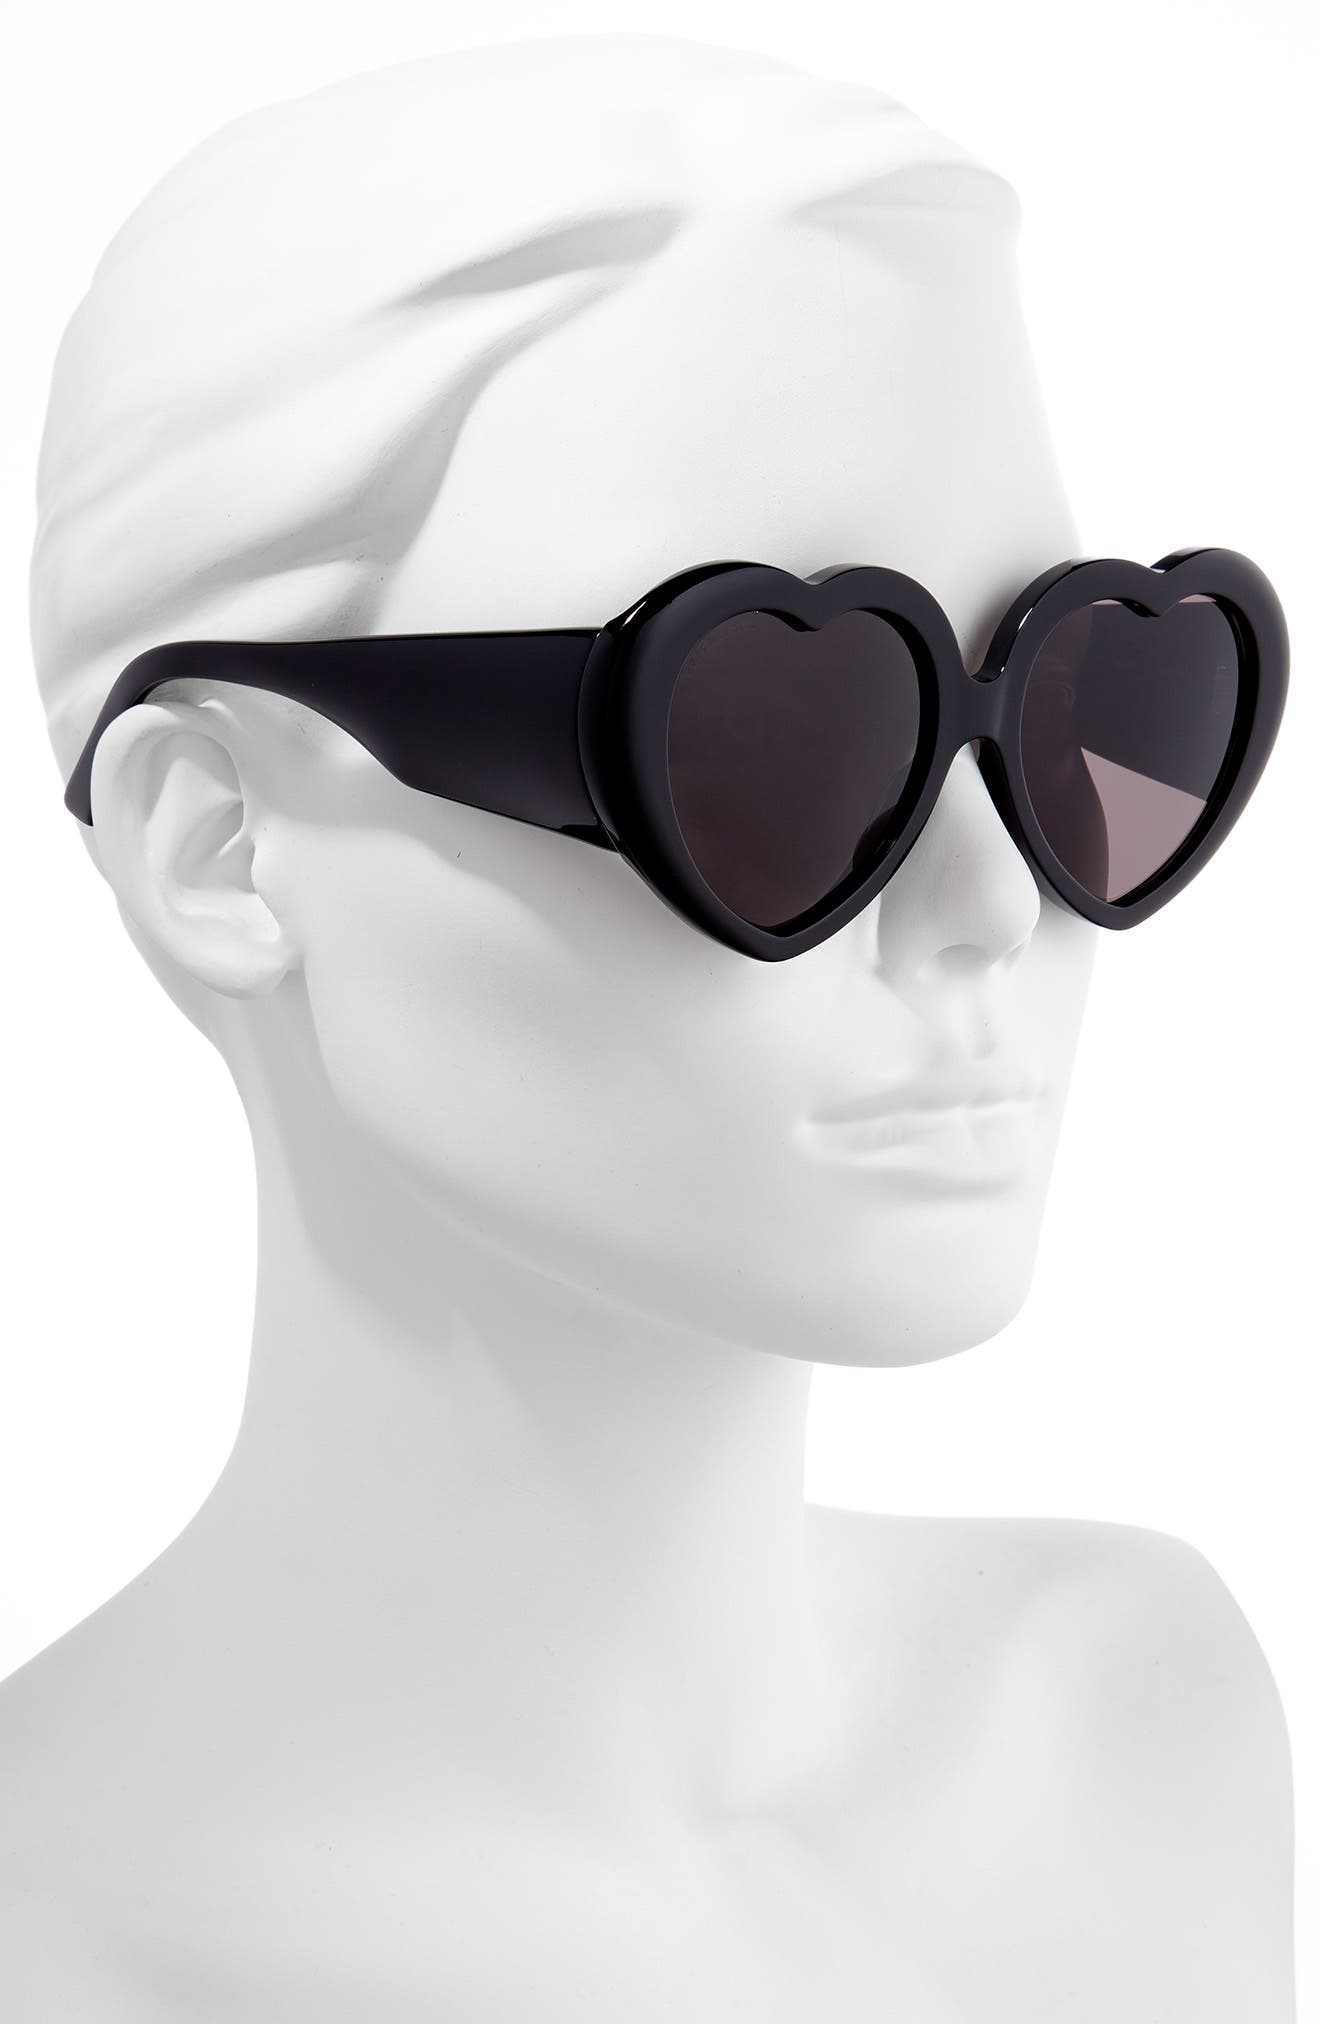 65cedb504a243 Sunglasses New Designer Clothes